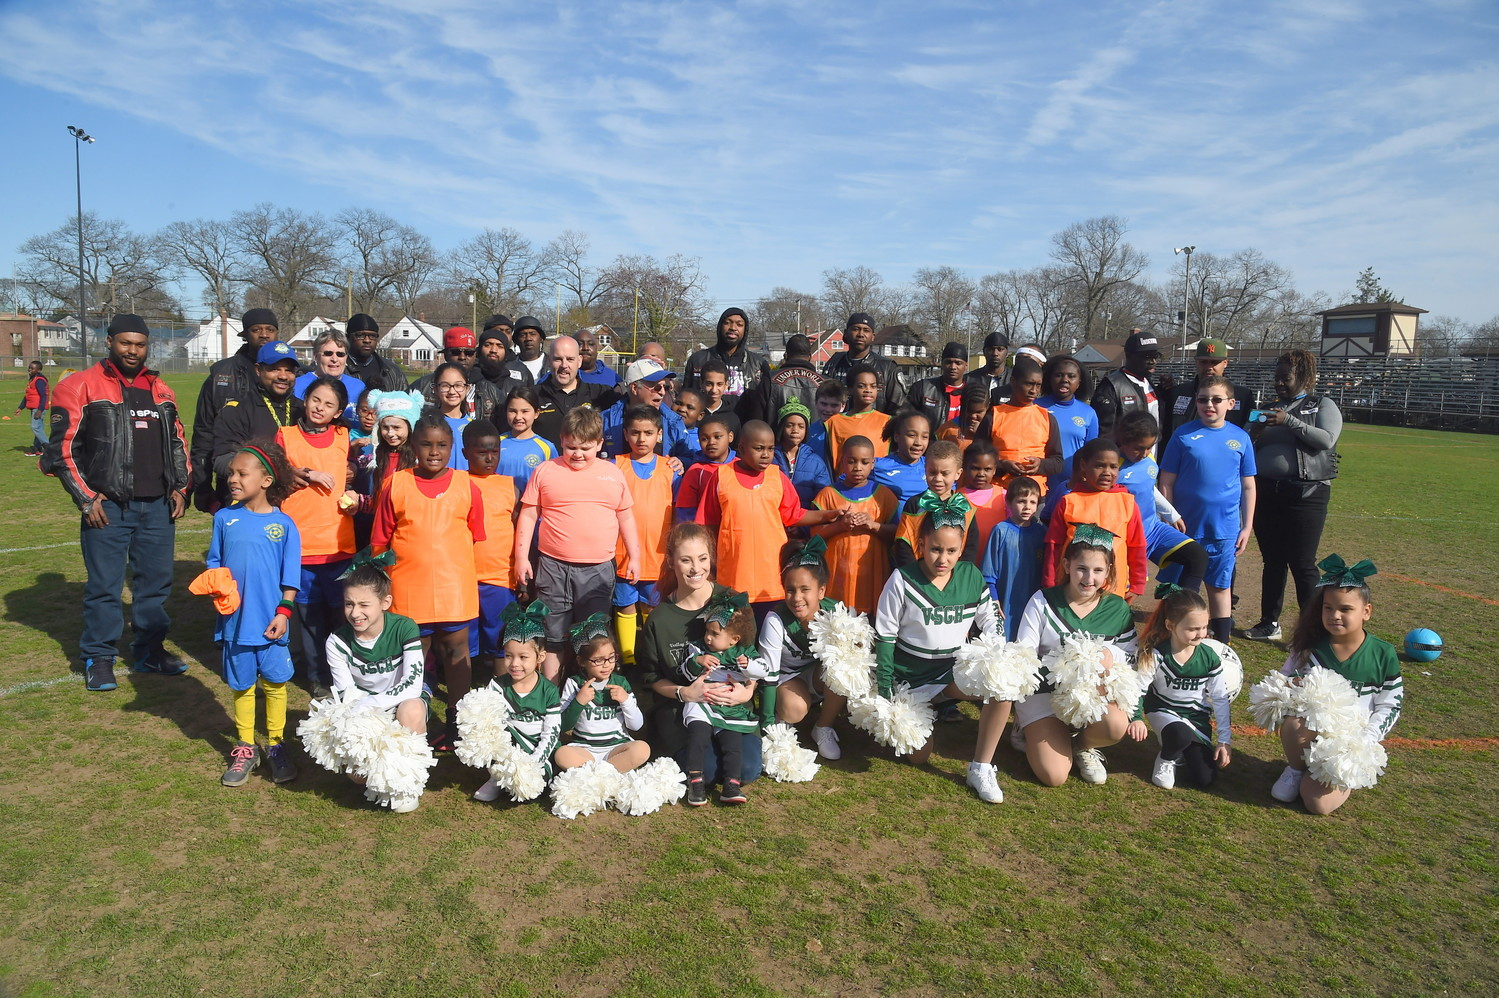 Valley Stream Soccer Club's TOPSoccer team, coaches and guests gathered at Fireman's Field last Saturday to highlight the club's special-needs program.